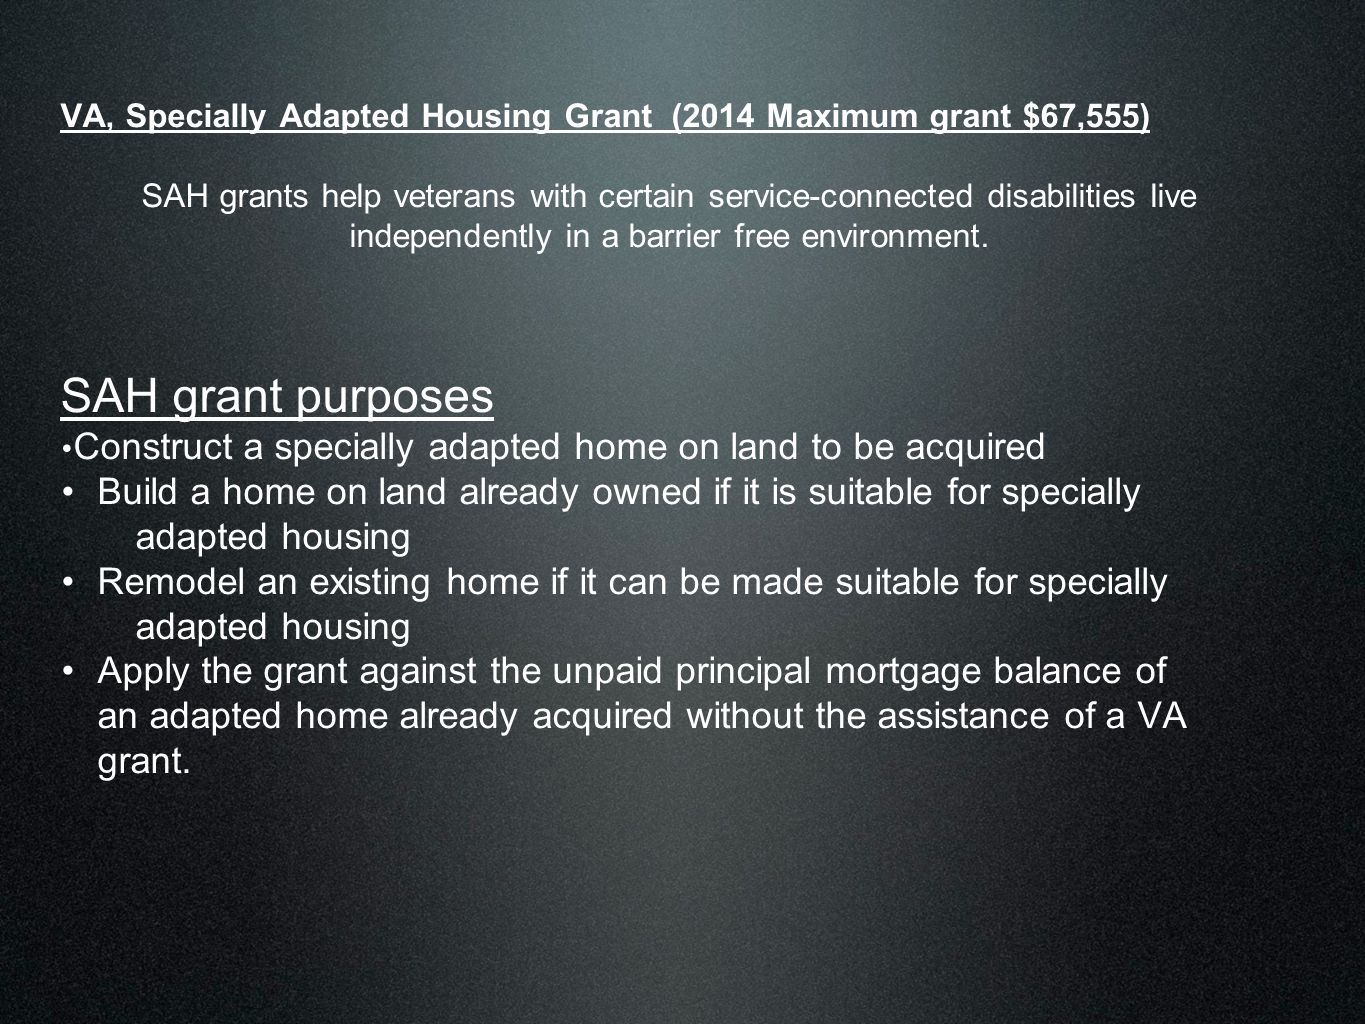 VA, Specially Adapted Housing Grant (2014 Maximum grant $67,555) SAH grants help veterans with certain service-connected disabilities live independently in a barrier free environment.